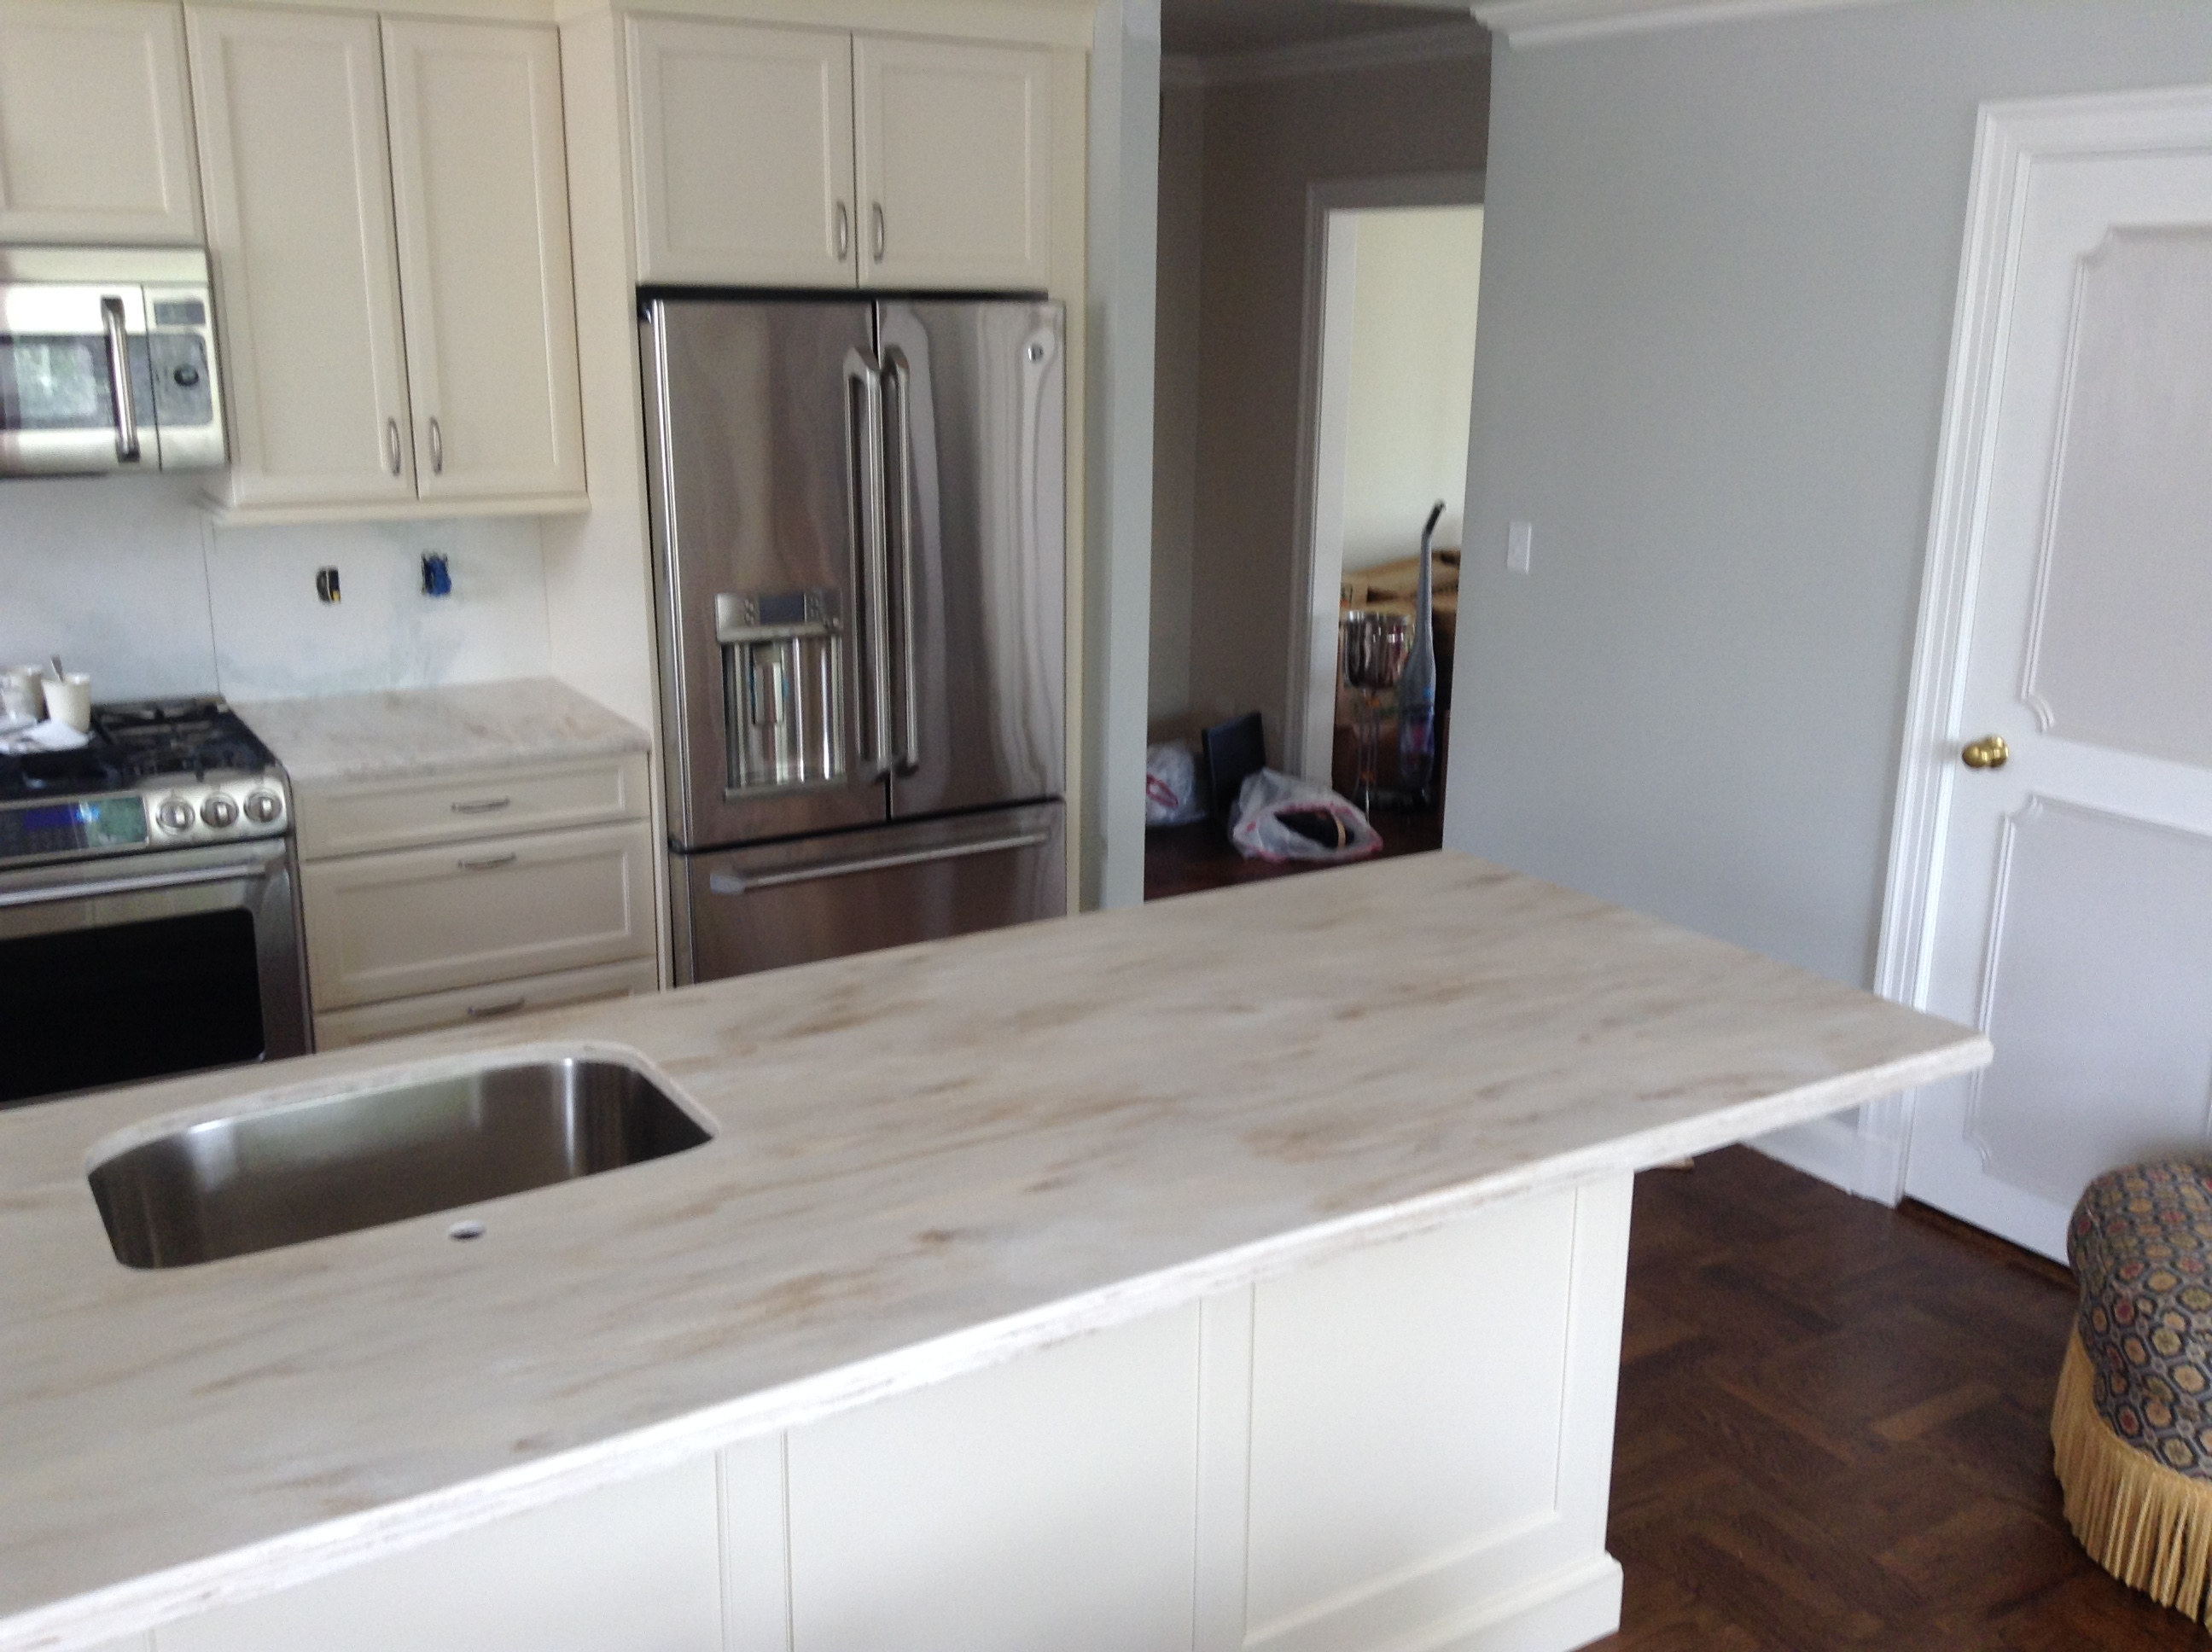 Clic Corian Witch Hazel Countertops By Starian